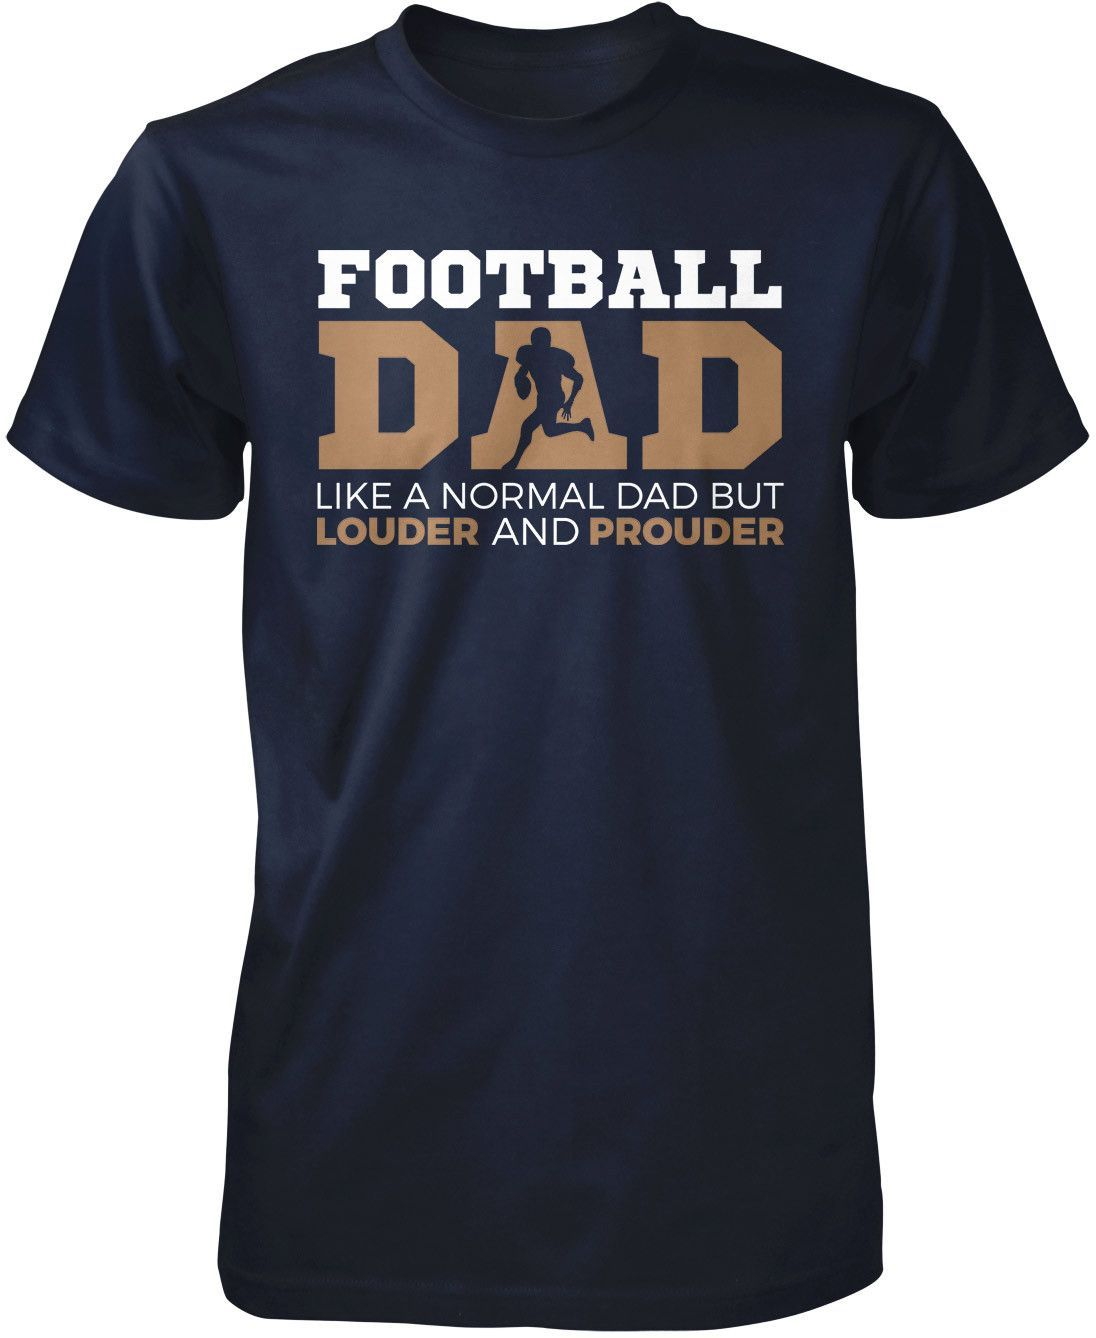 53d1f6a1 Football Dad like a normal dad but louder and prouder The perfect t-shirt  for